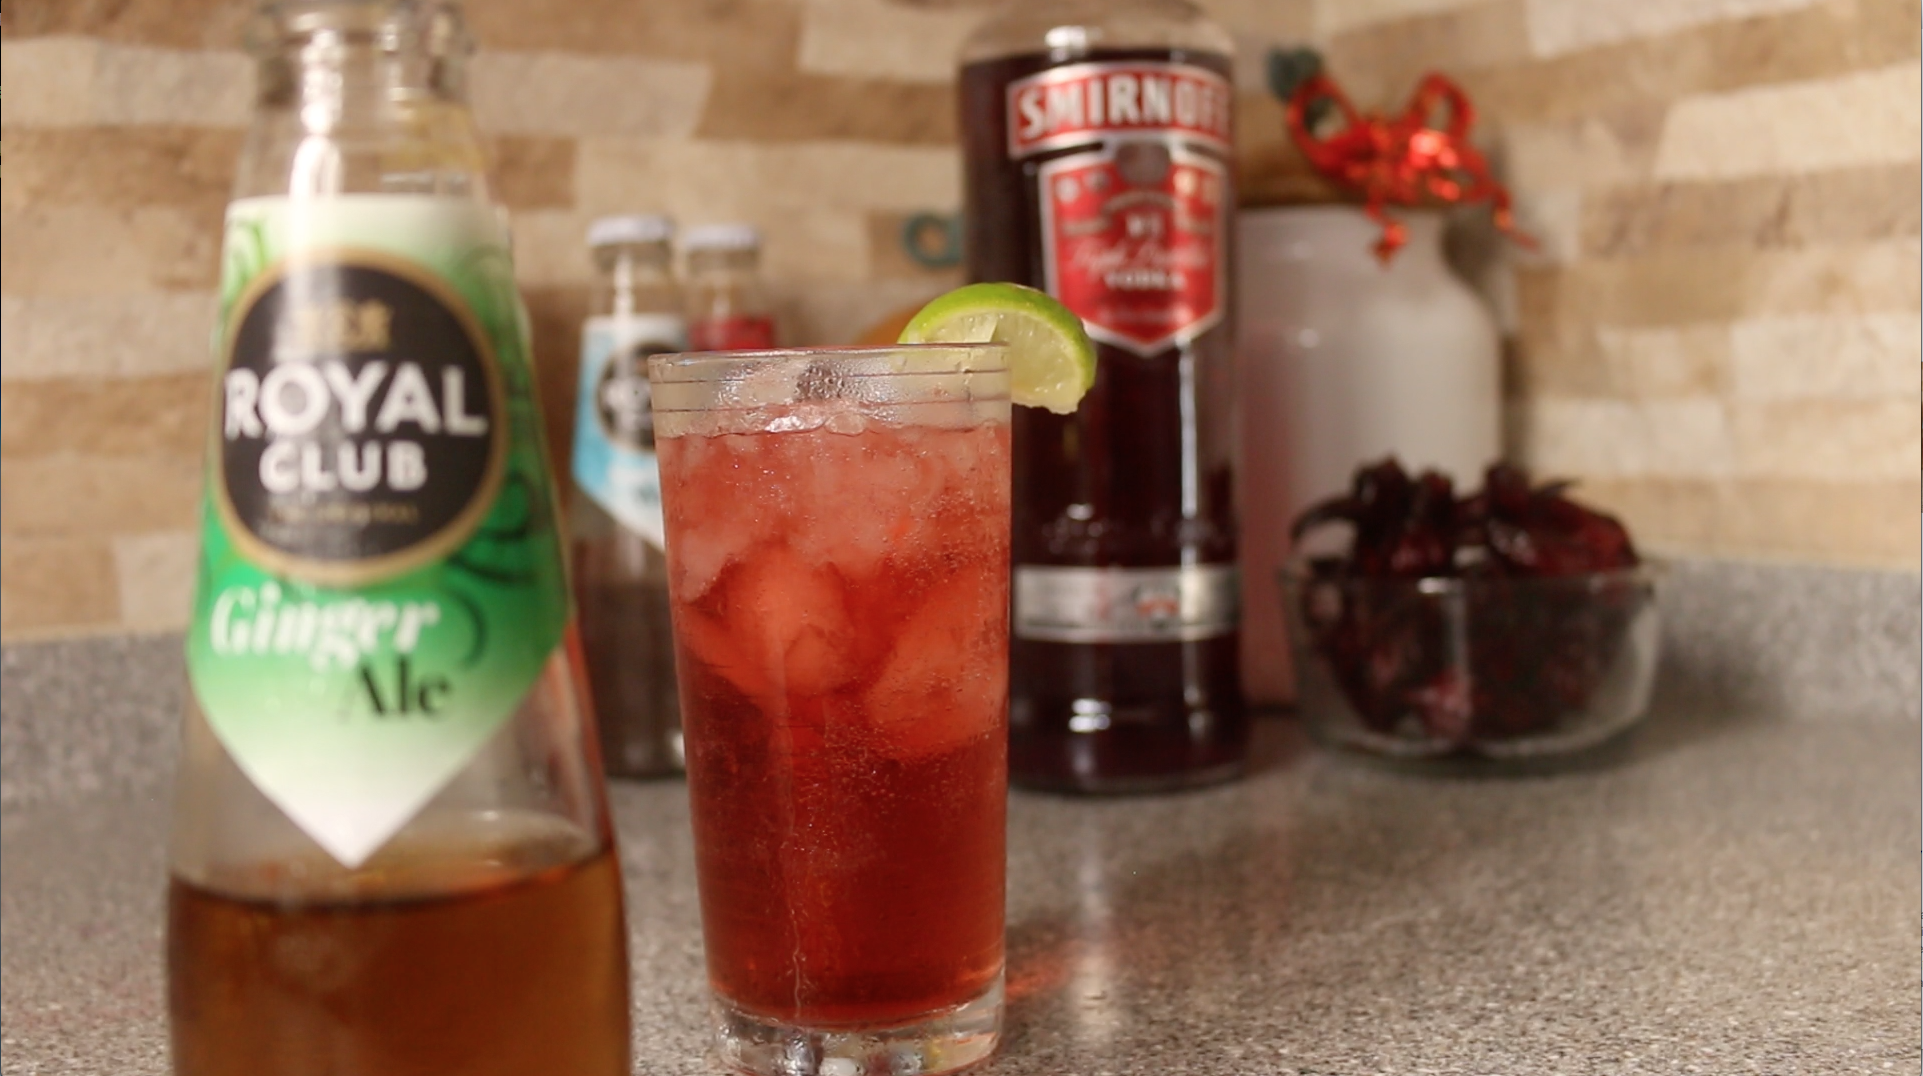 Royal Club Sorrel Vodka Ale